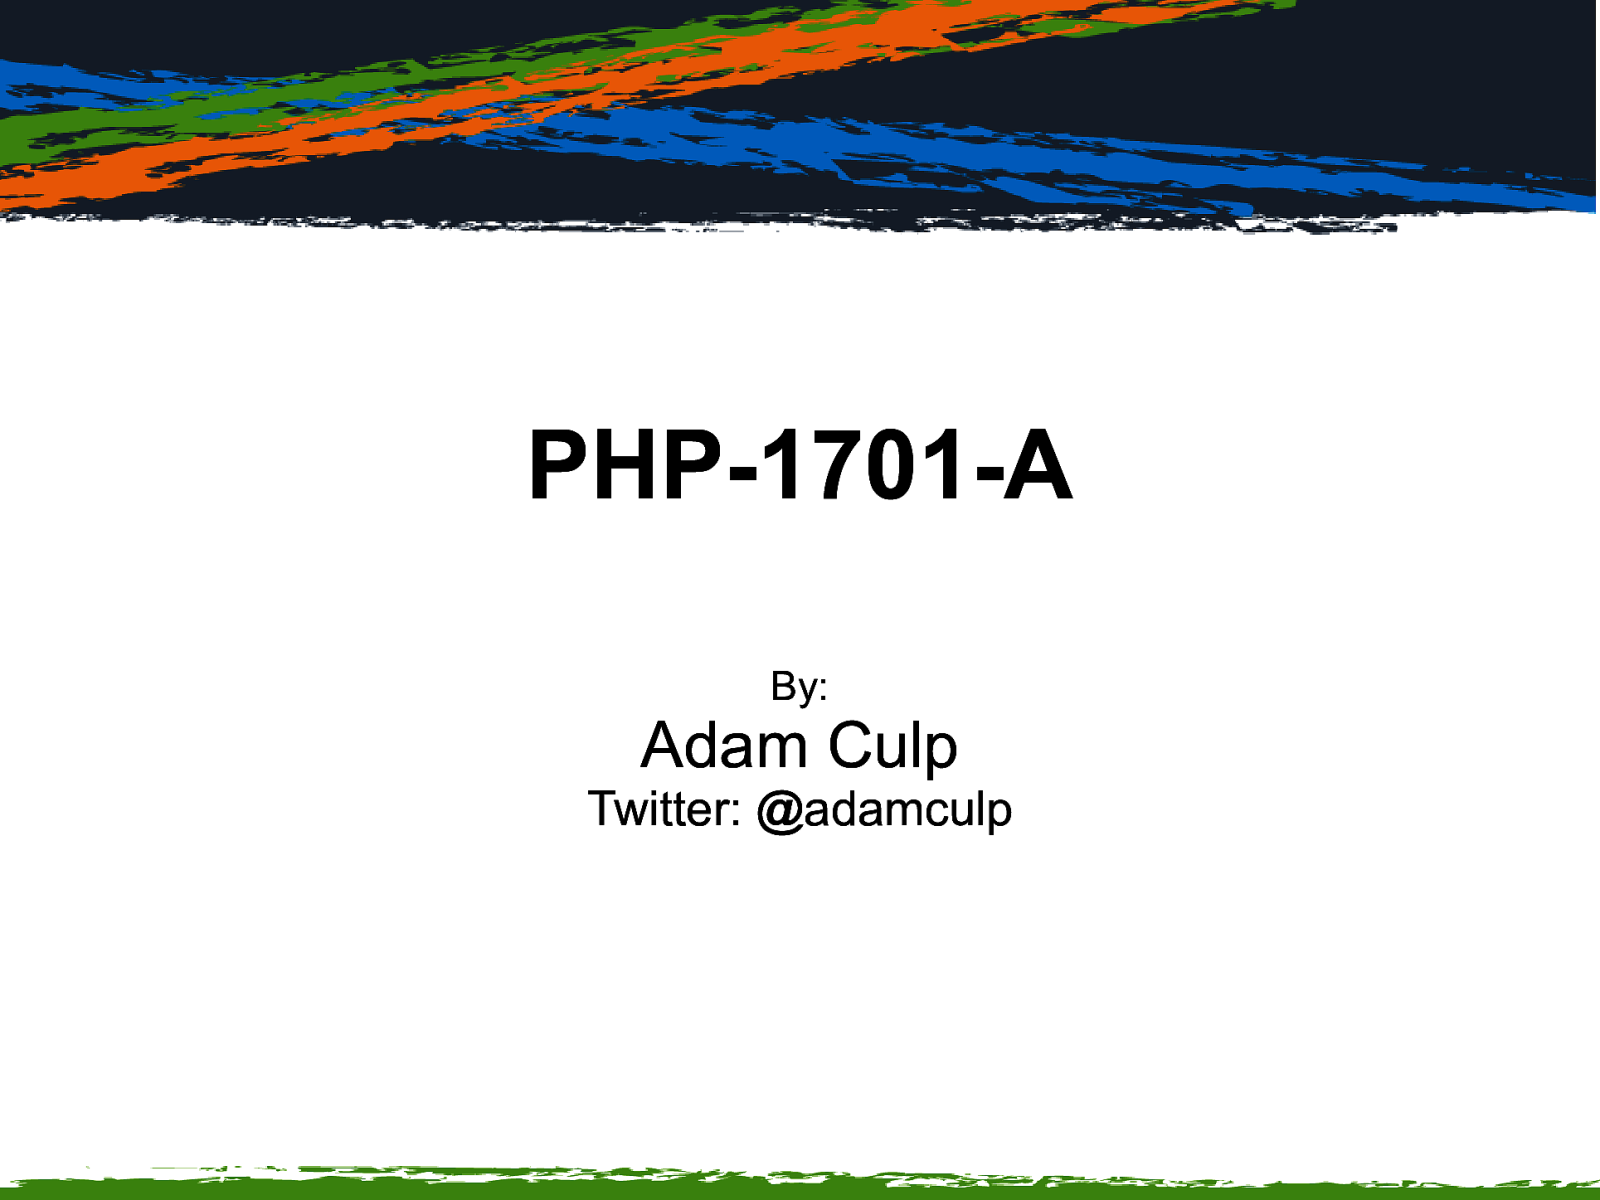 PHP-1701-A